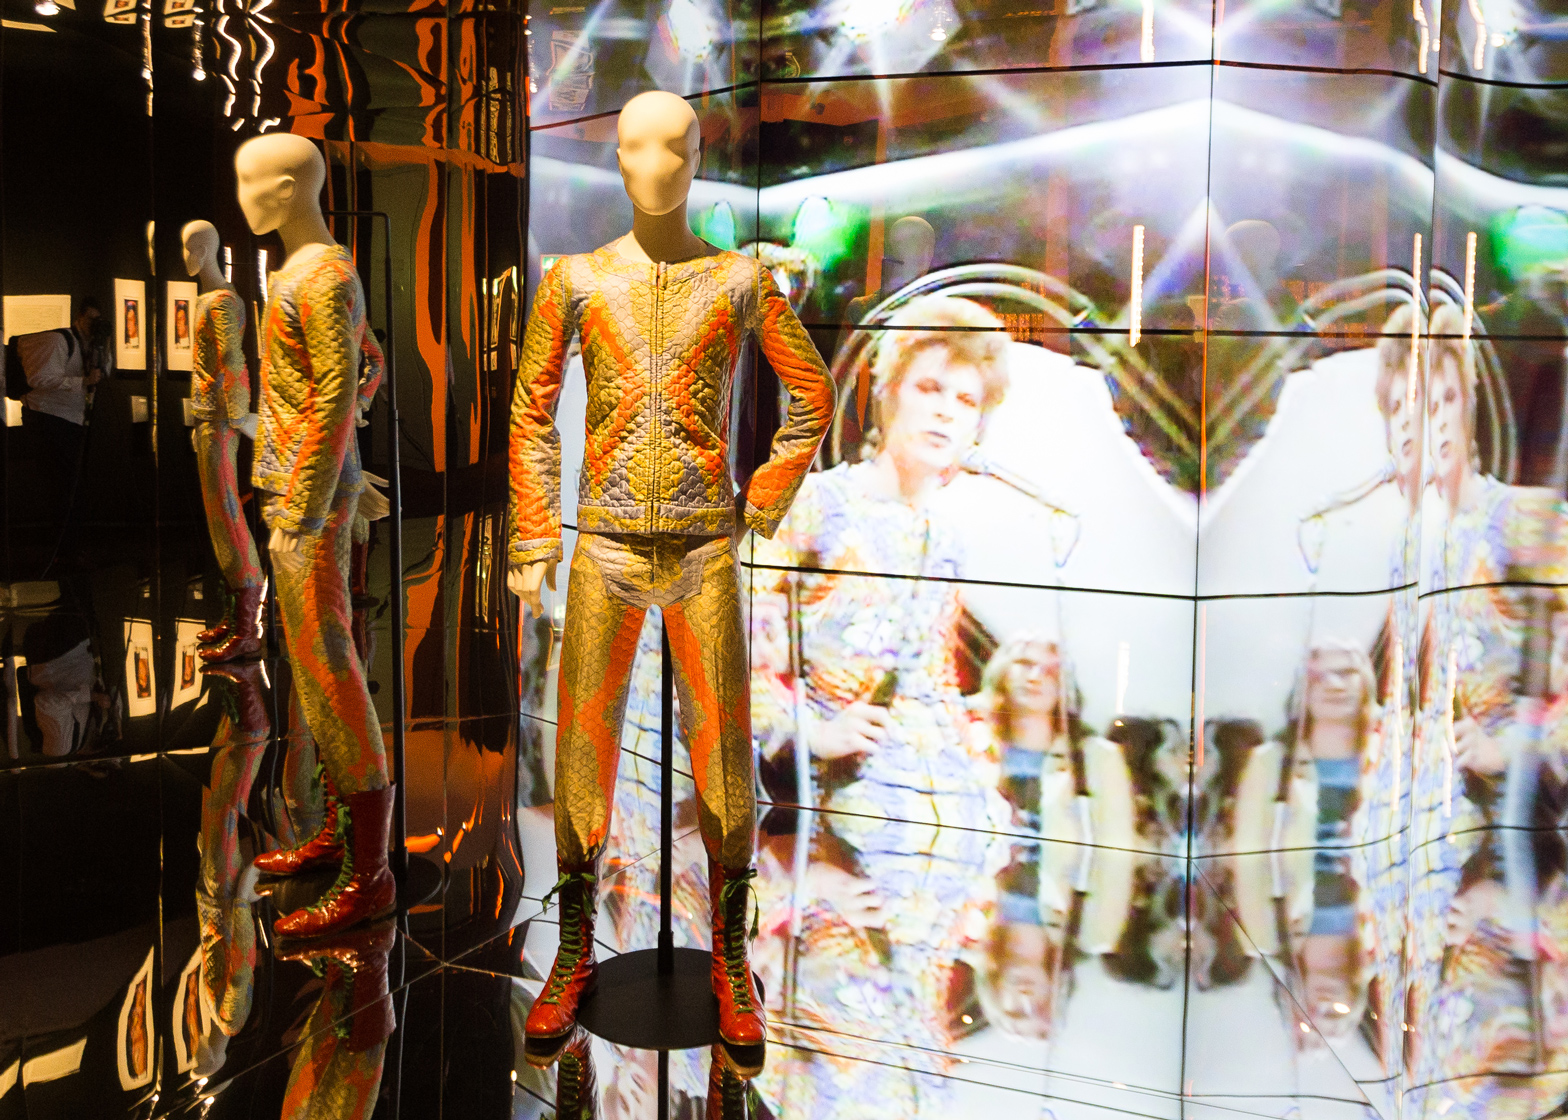 David Bowie Is... on show at the Groninger Museum. Photo by Gerhard Taatgen